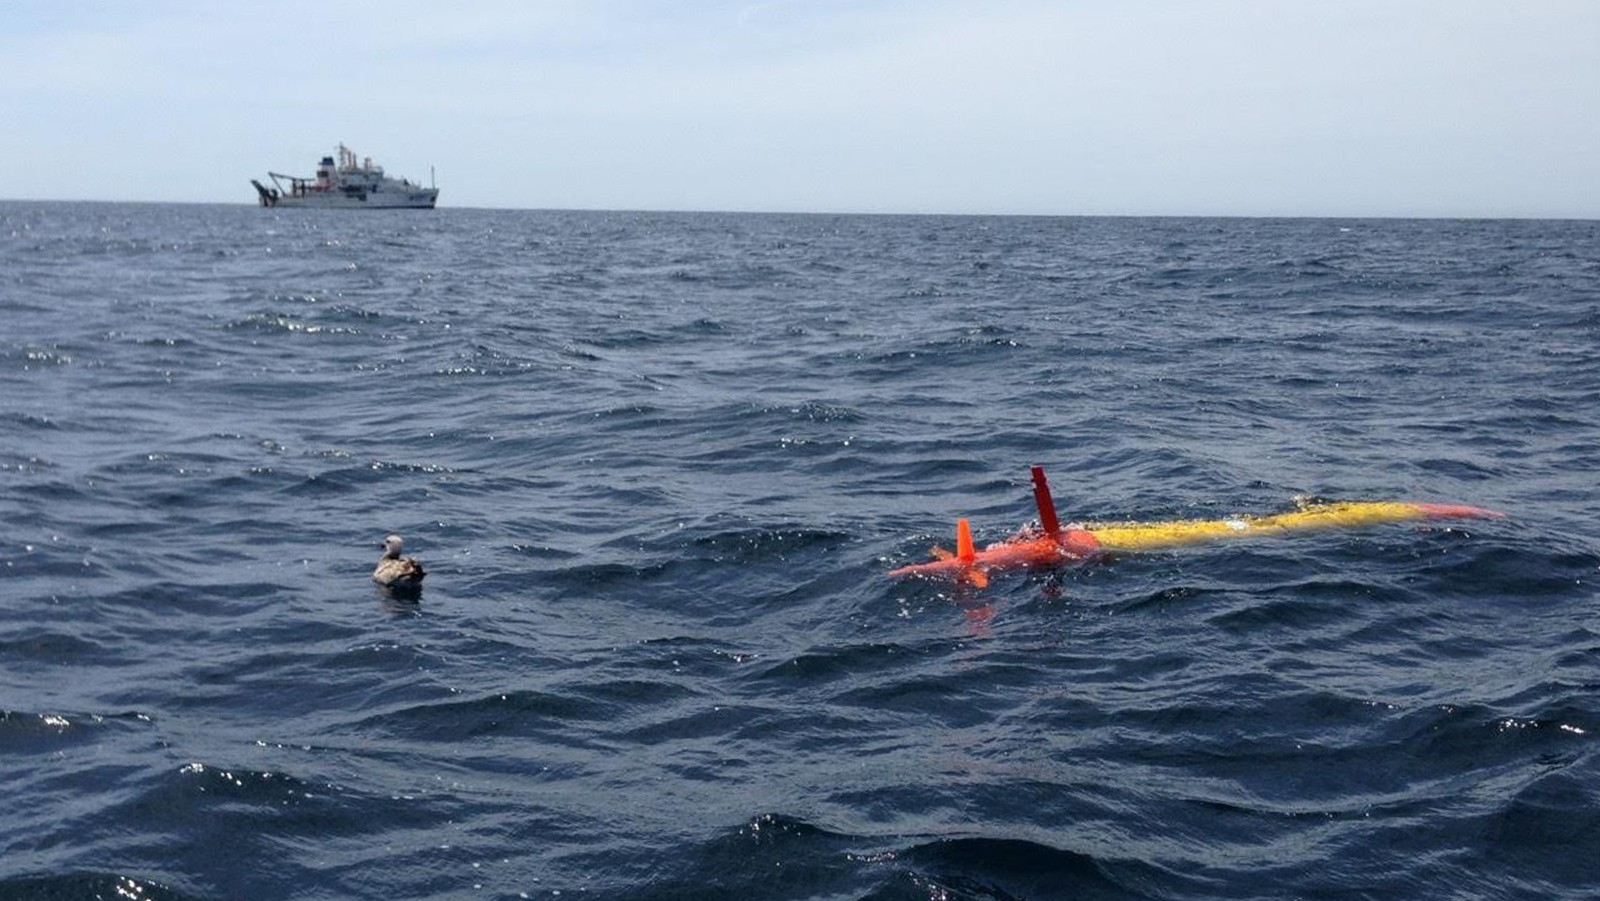 An eAUV is deployed during April 2017 CalCOFI cruise. Image credit: NOAA